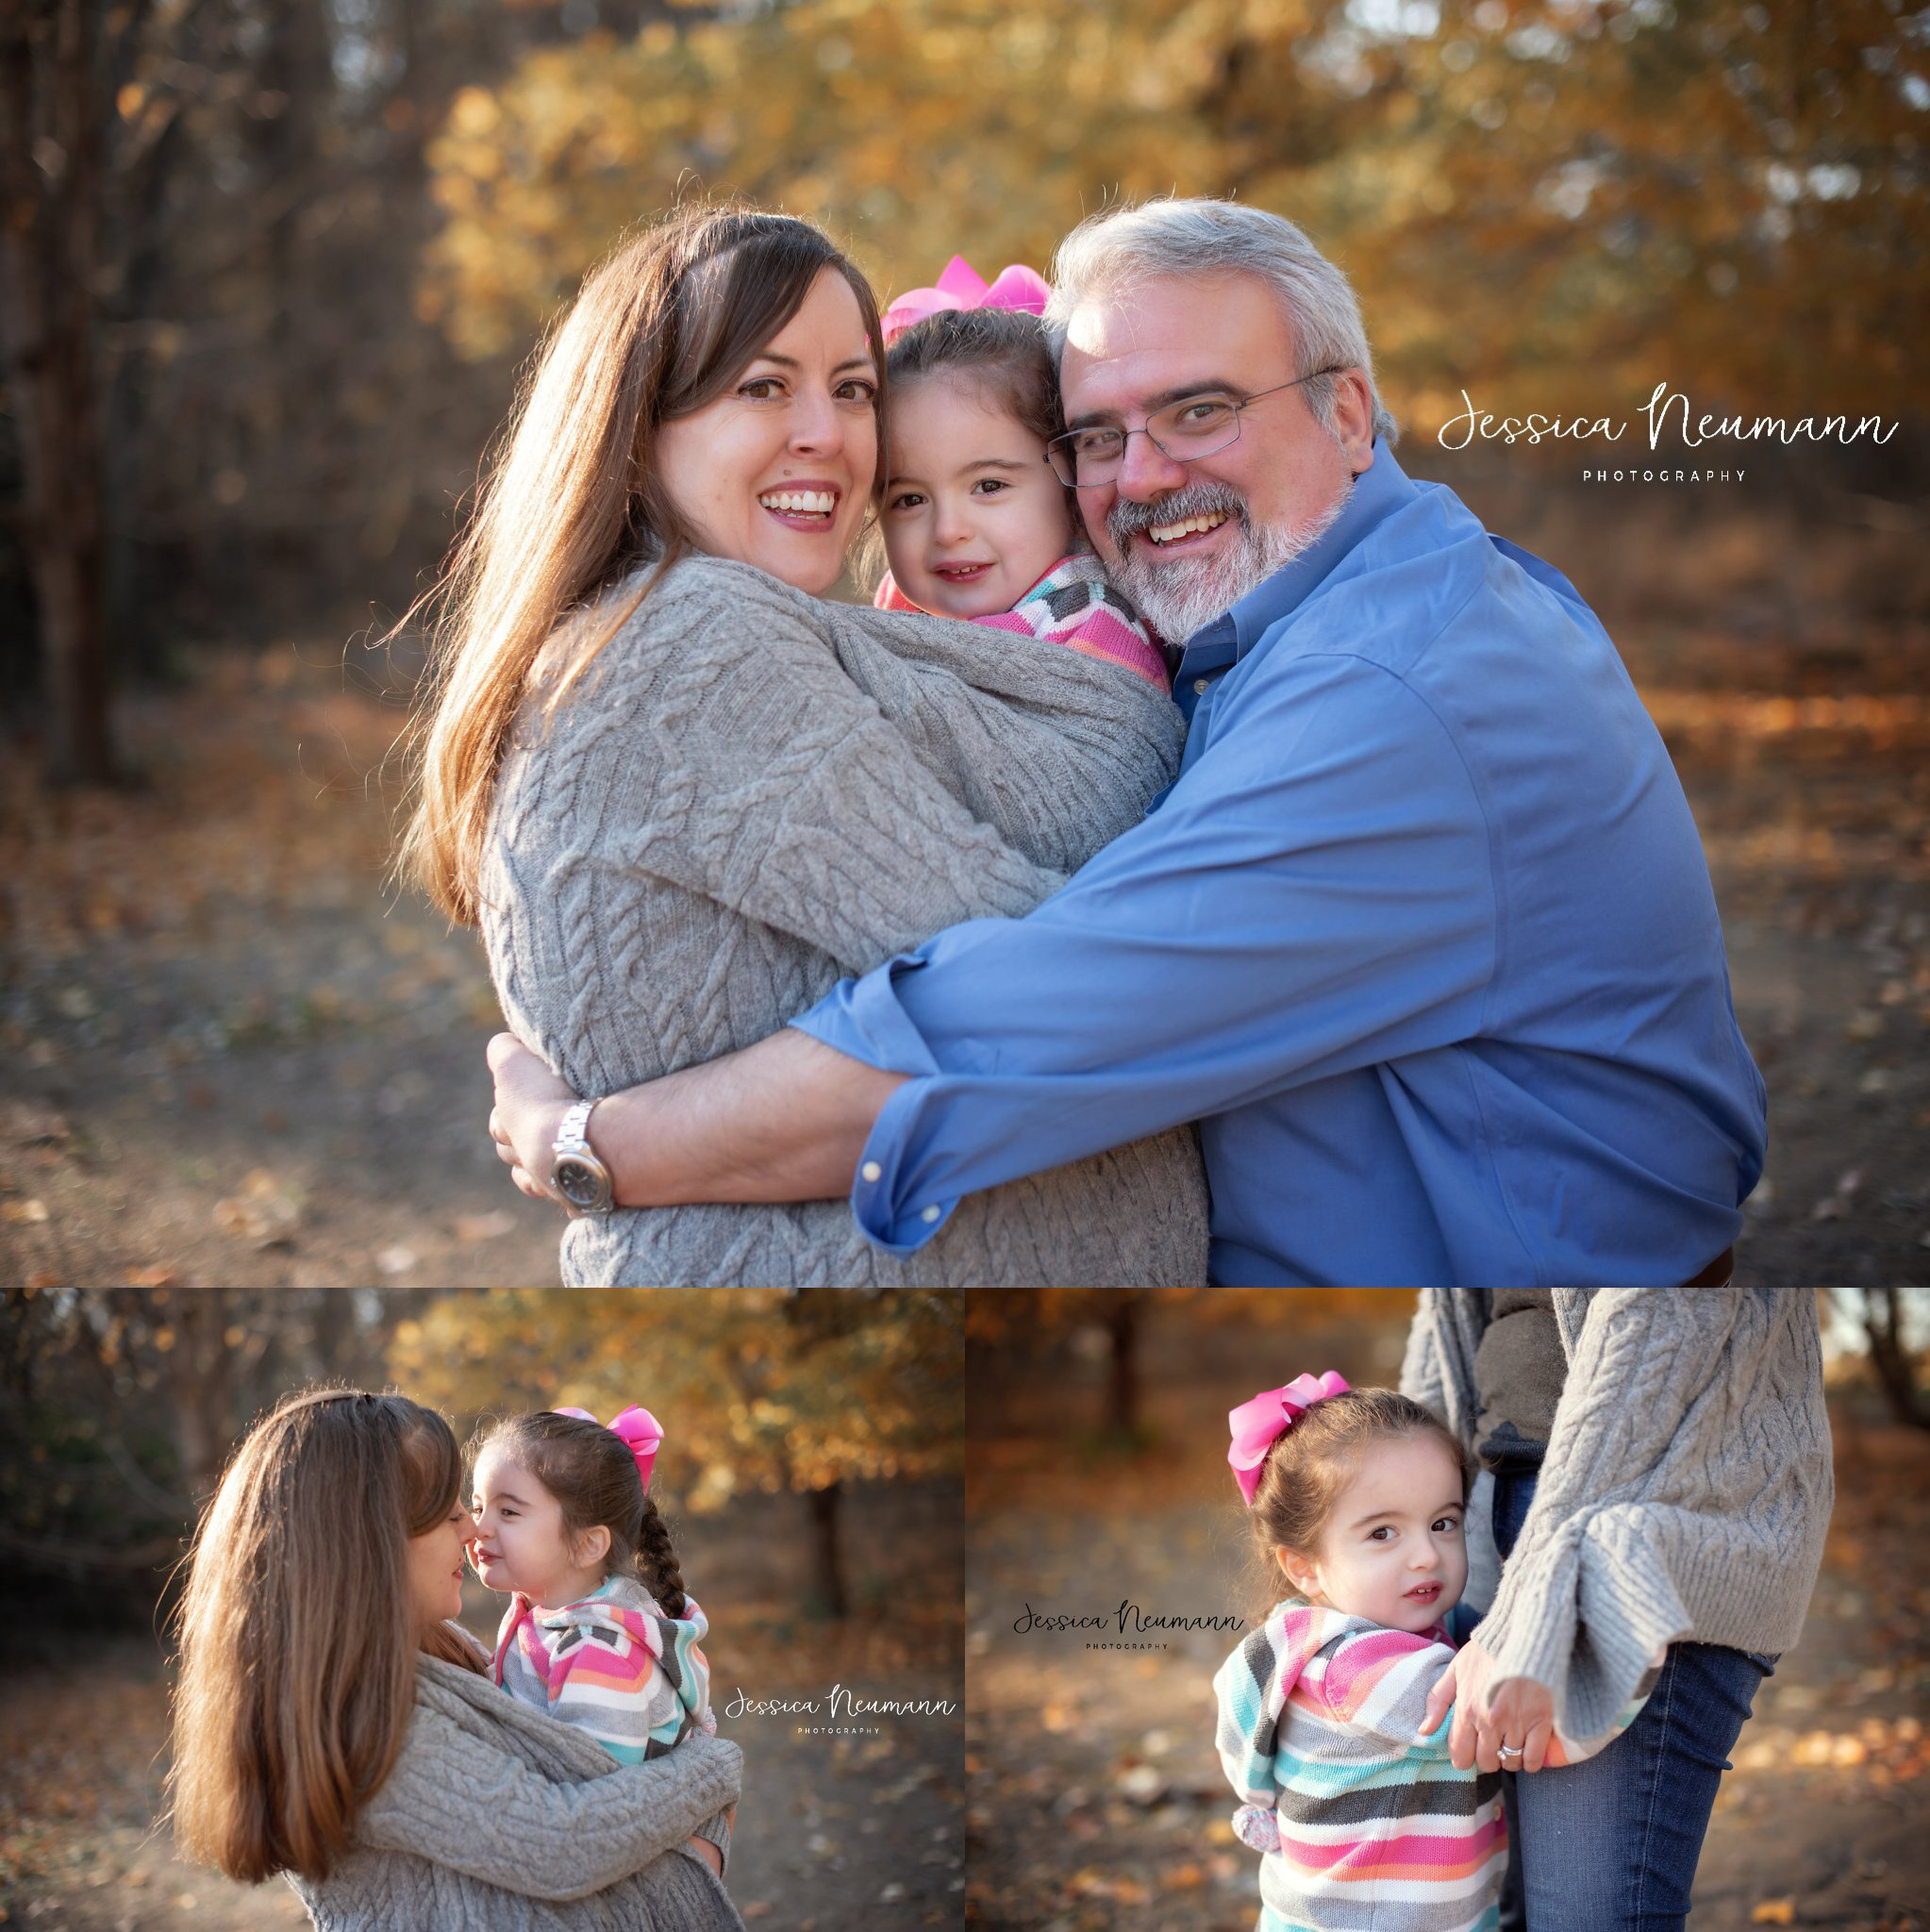 Happy Family outdoor photos in the Fall in Frederick, MD